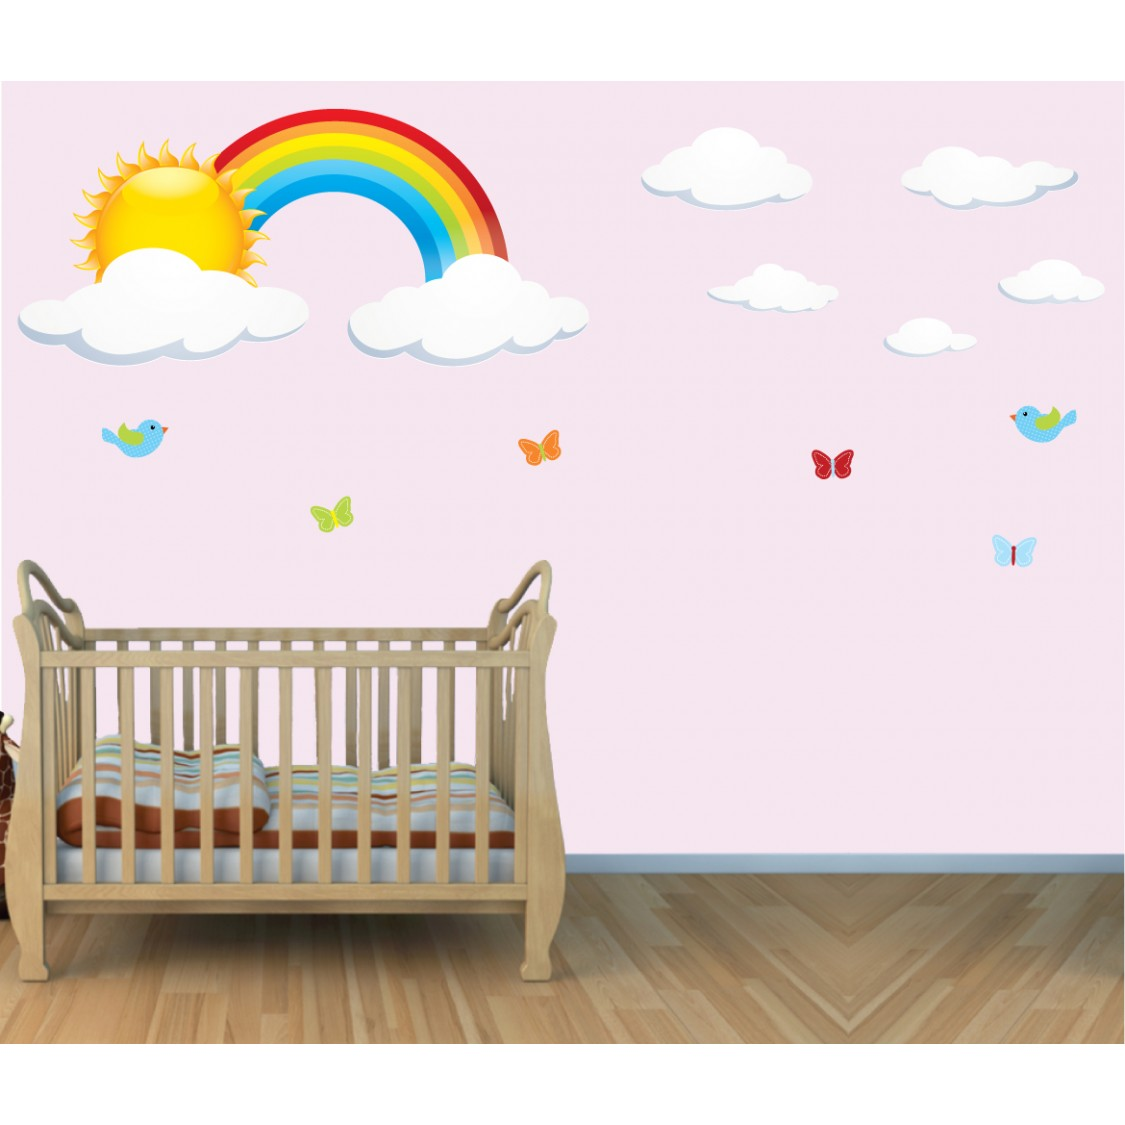 large rainbow stickers for kids playroom